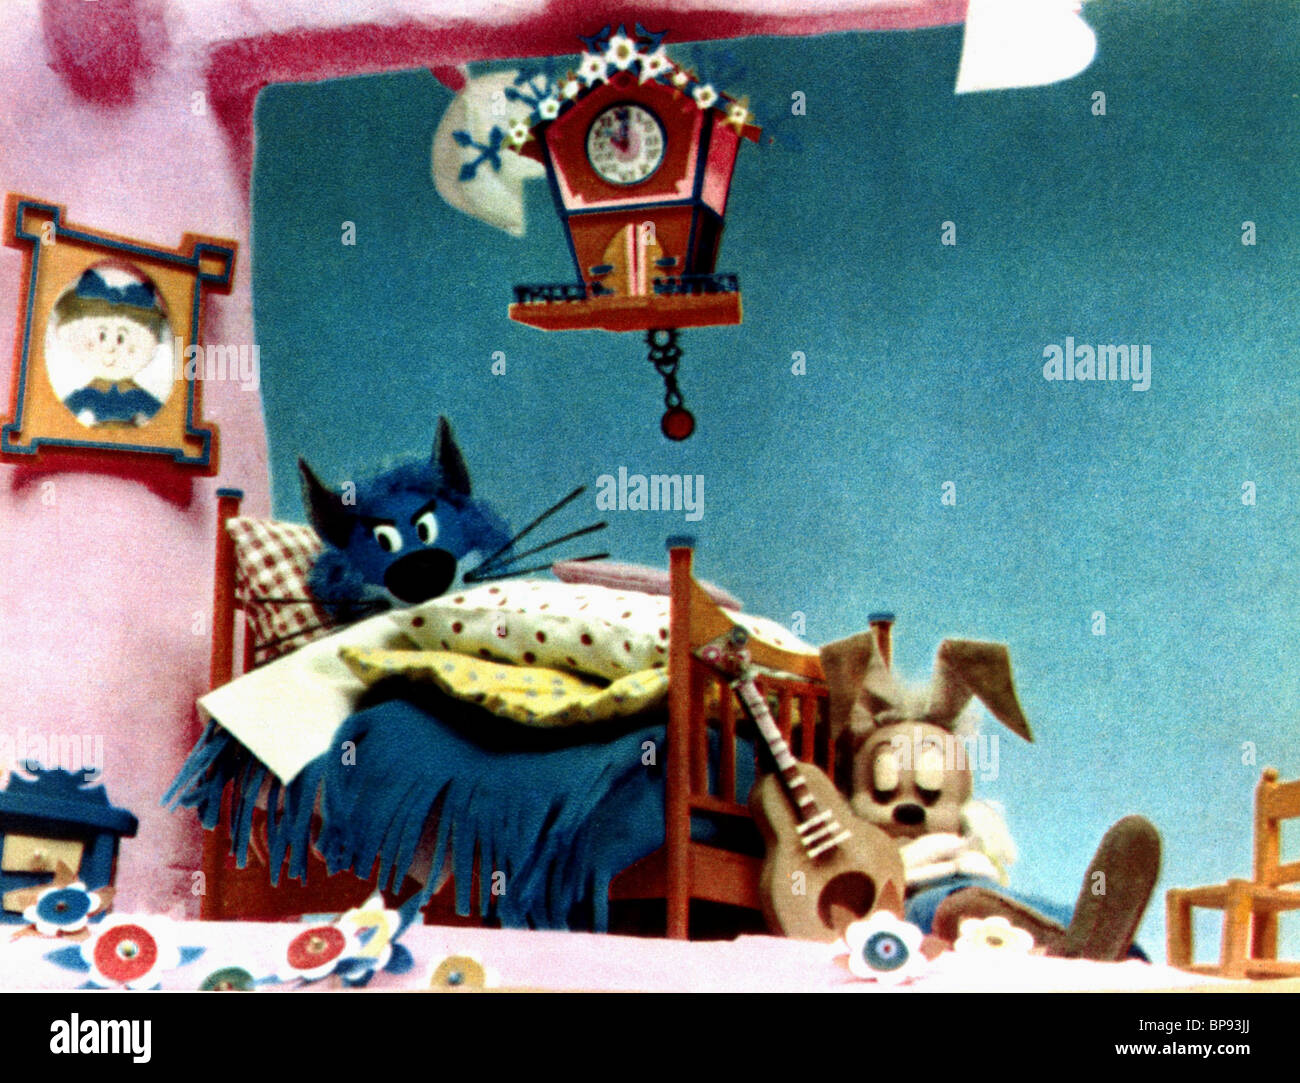 BLUE CAT & DYLAN DOUGAL AND THE BLUE CAT MAGIC ROUNDABOUT 1970